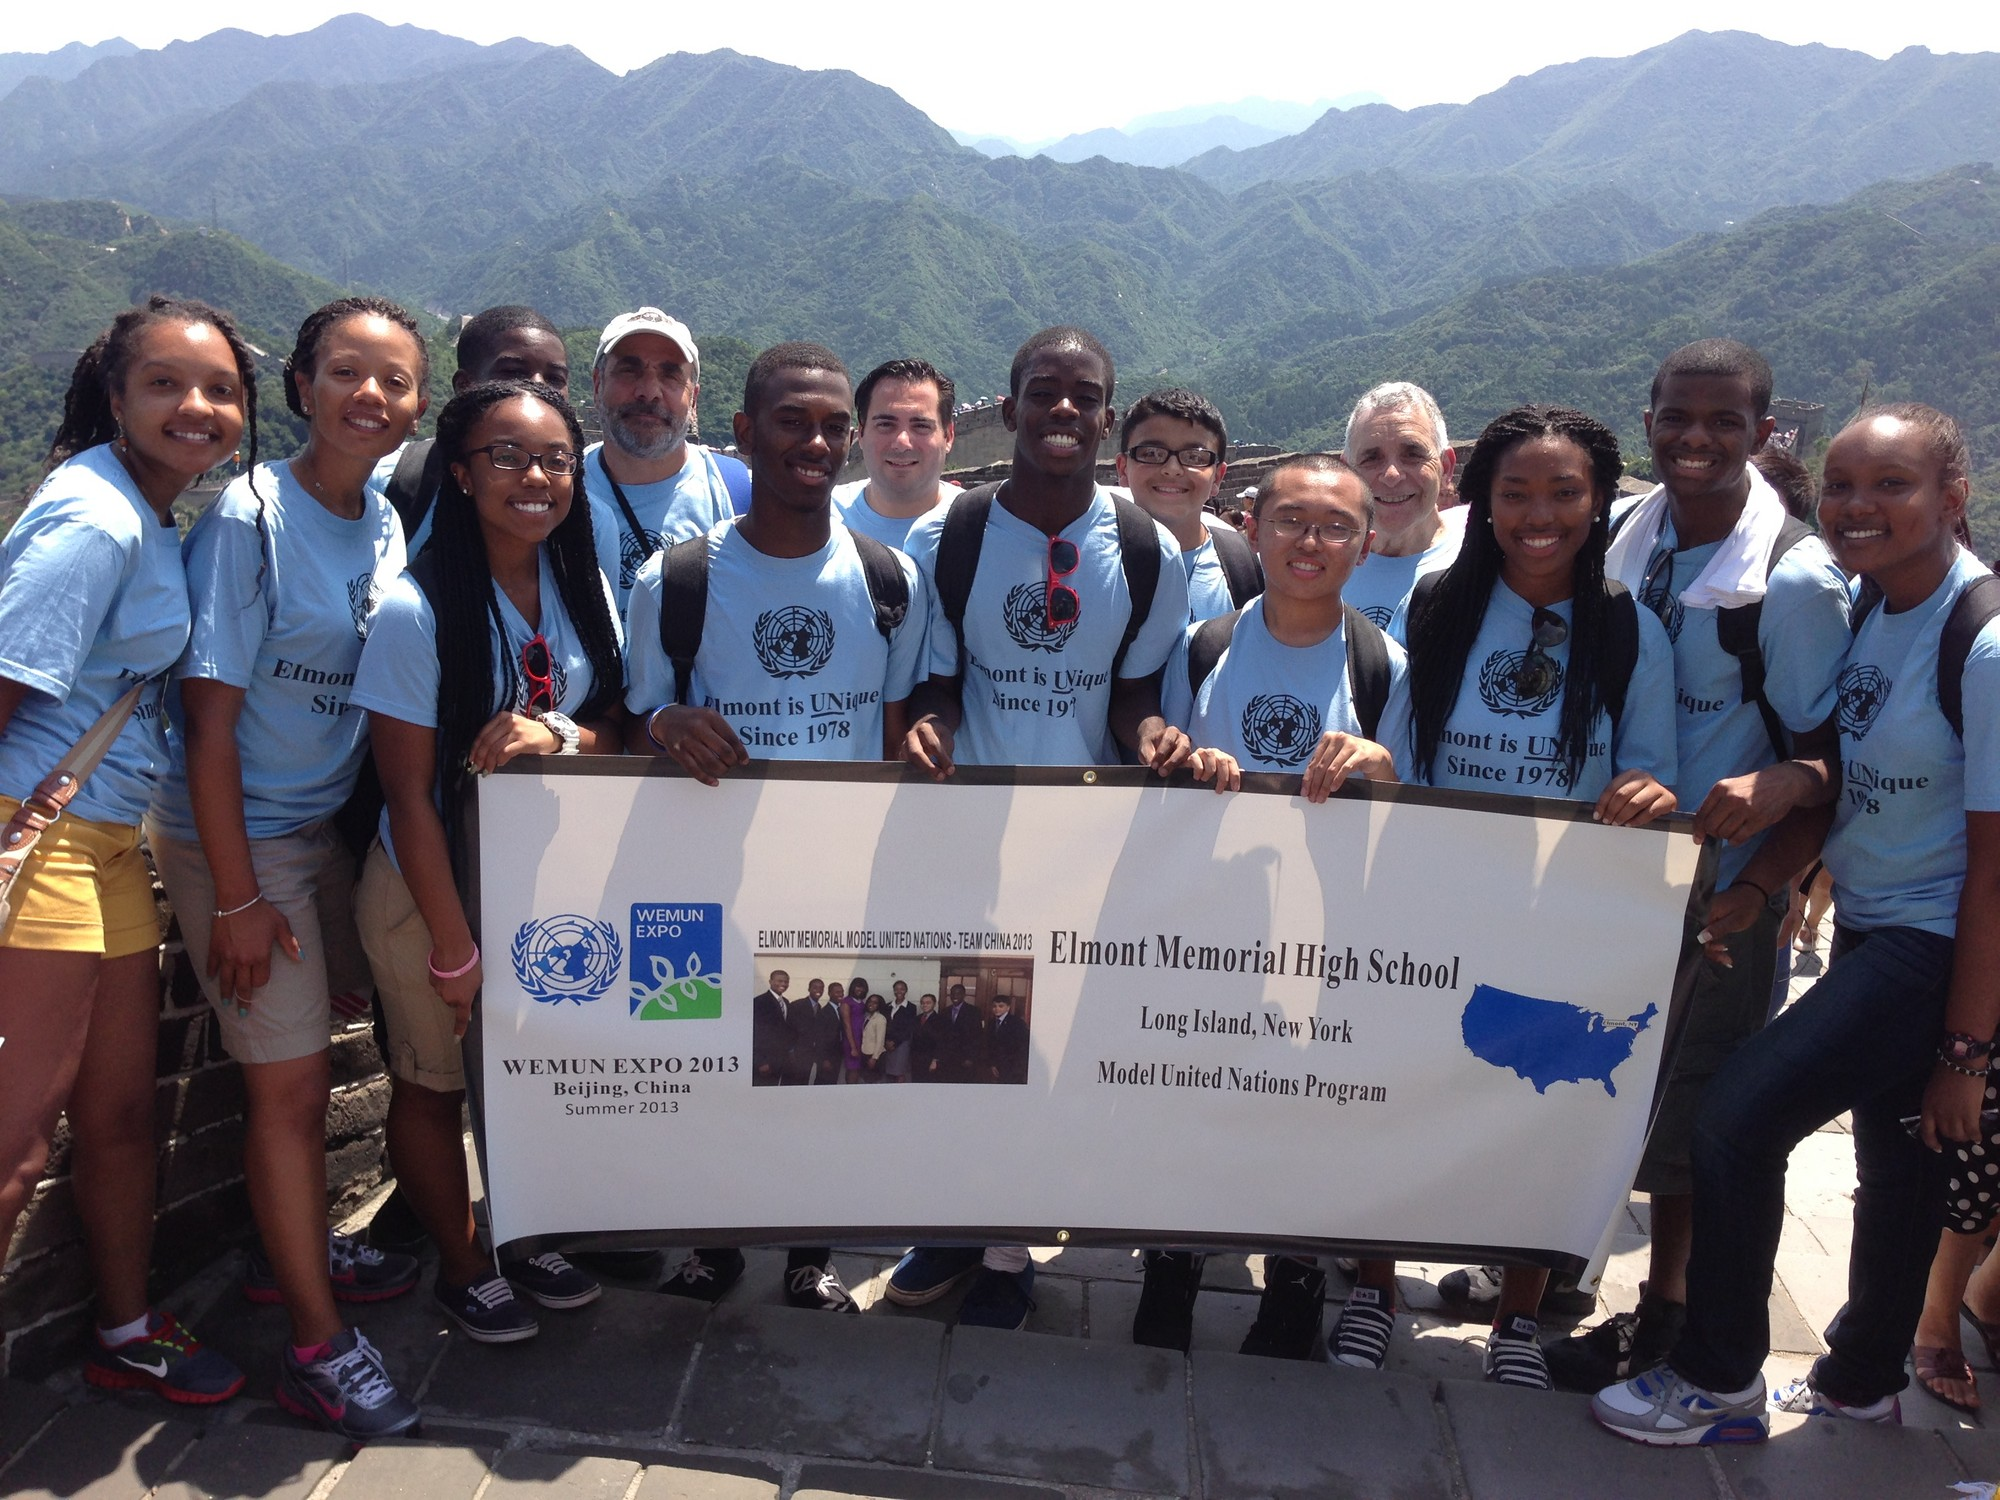 With Beijing as a backdrop, the Model U.N. team from Elmont Memorial High School proudly held its banner during its weeklong trip.